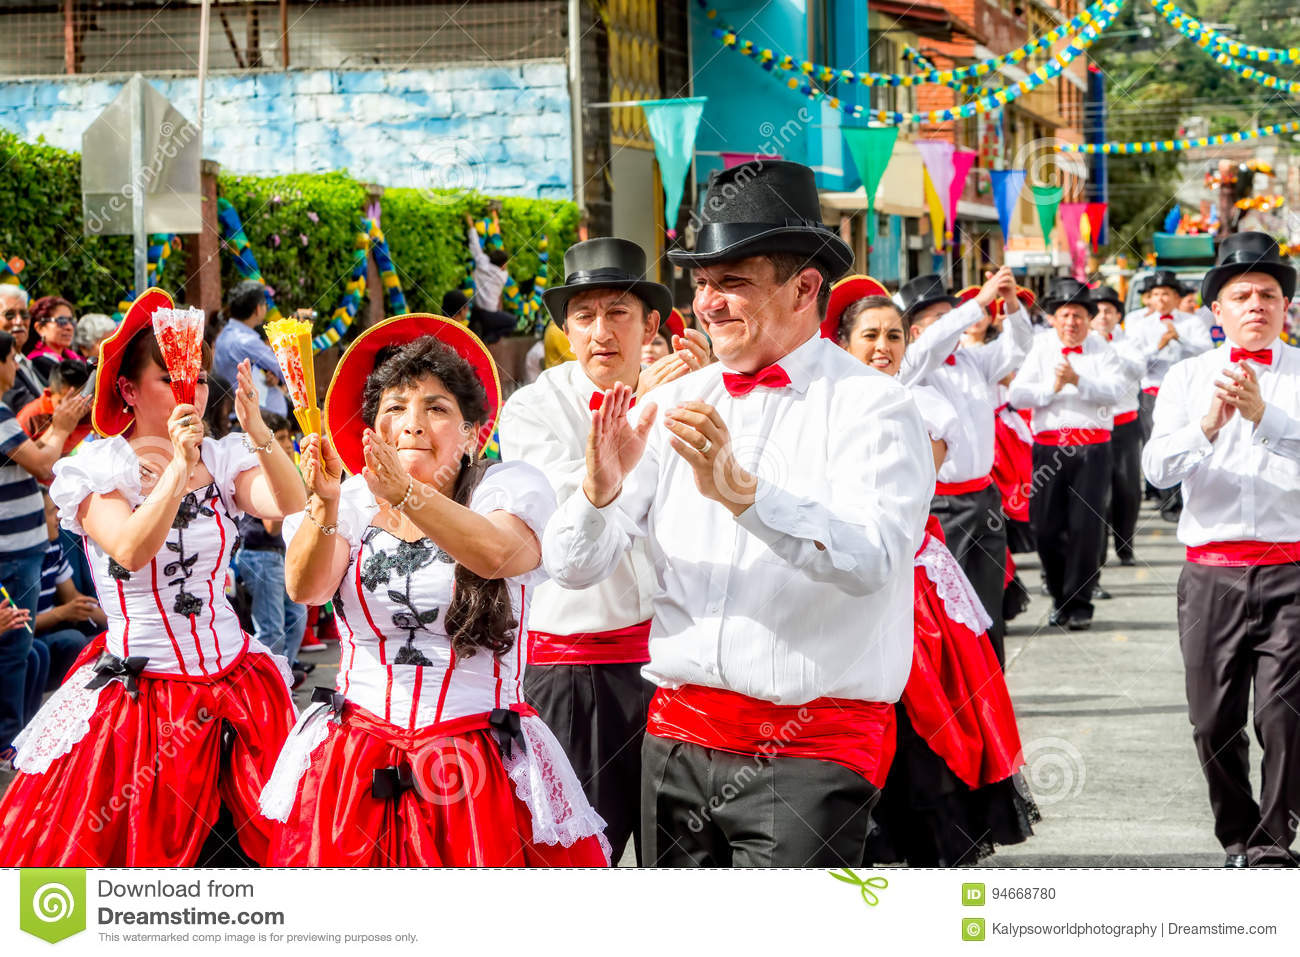 Latino Dancers Performing On The Street